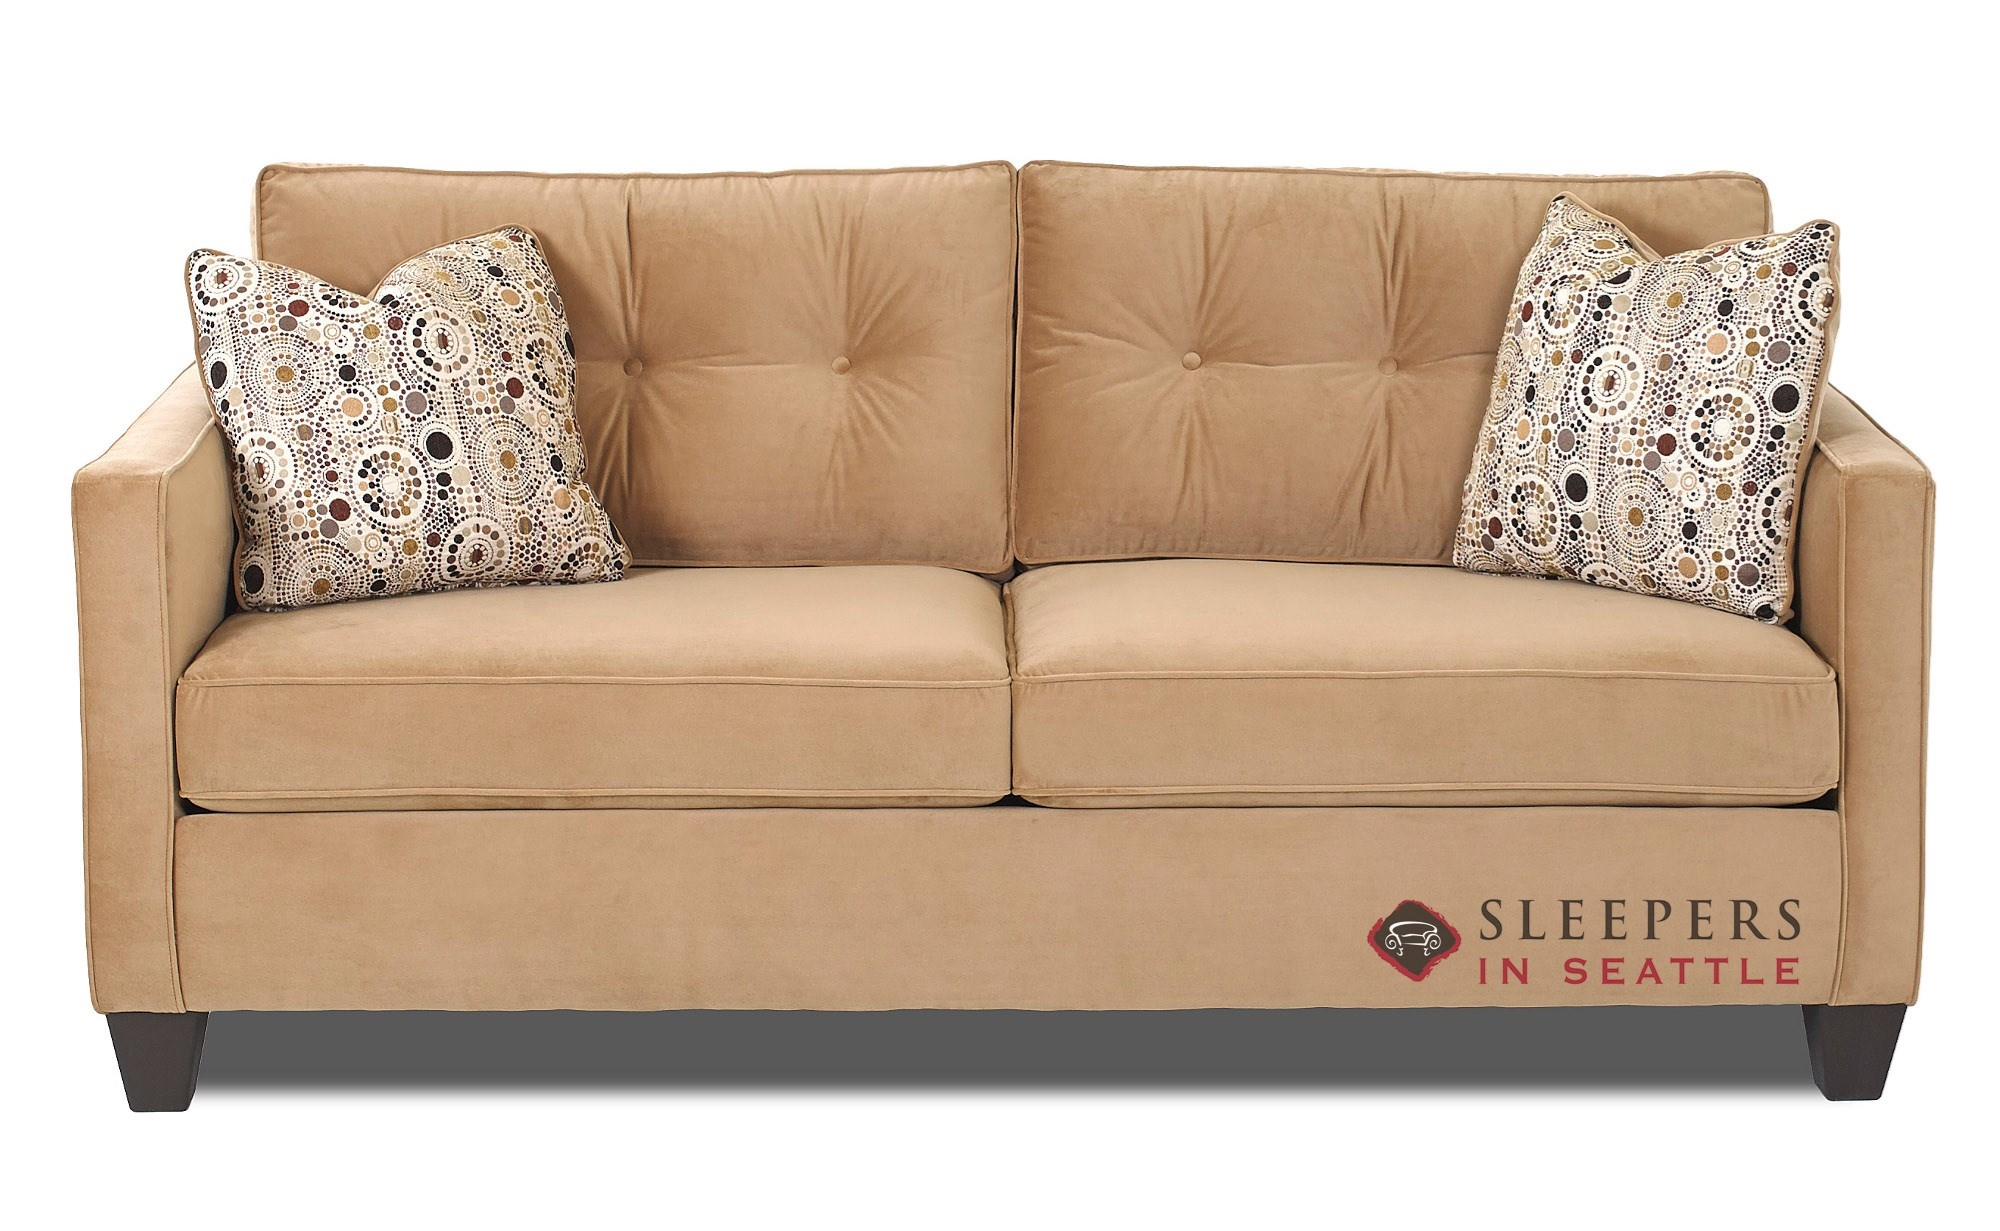 Small queen sleeper sofa beautiful queen sleeper sofa ikea for Sectional sleeper sofa with queen bed